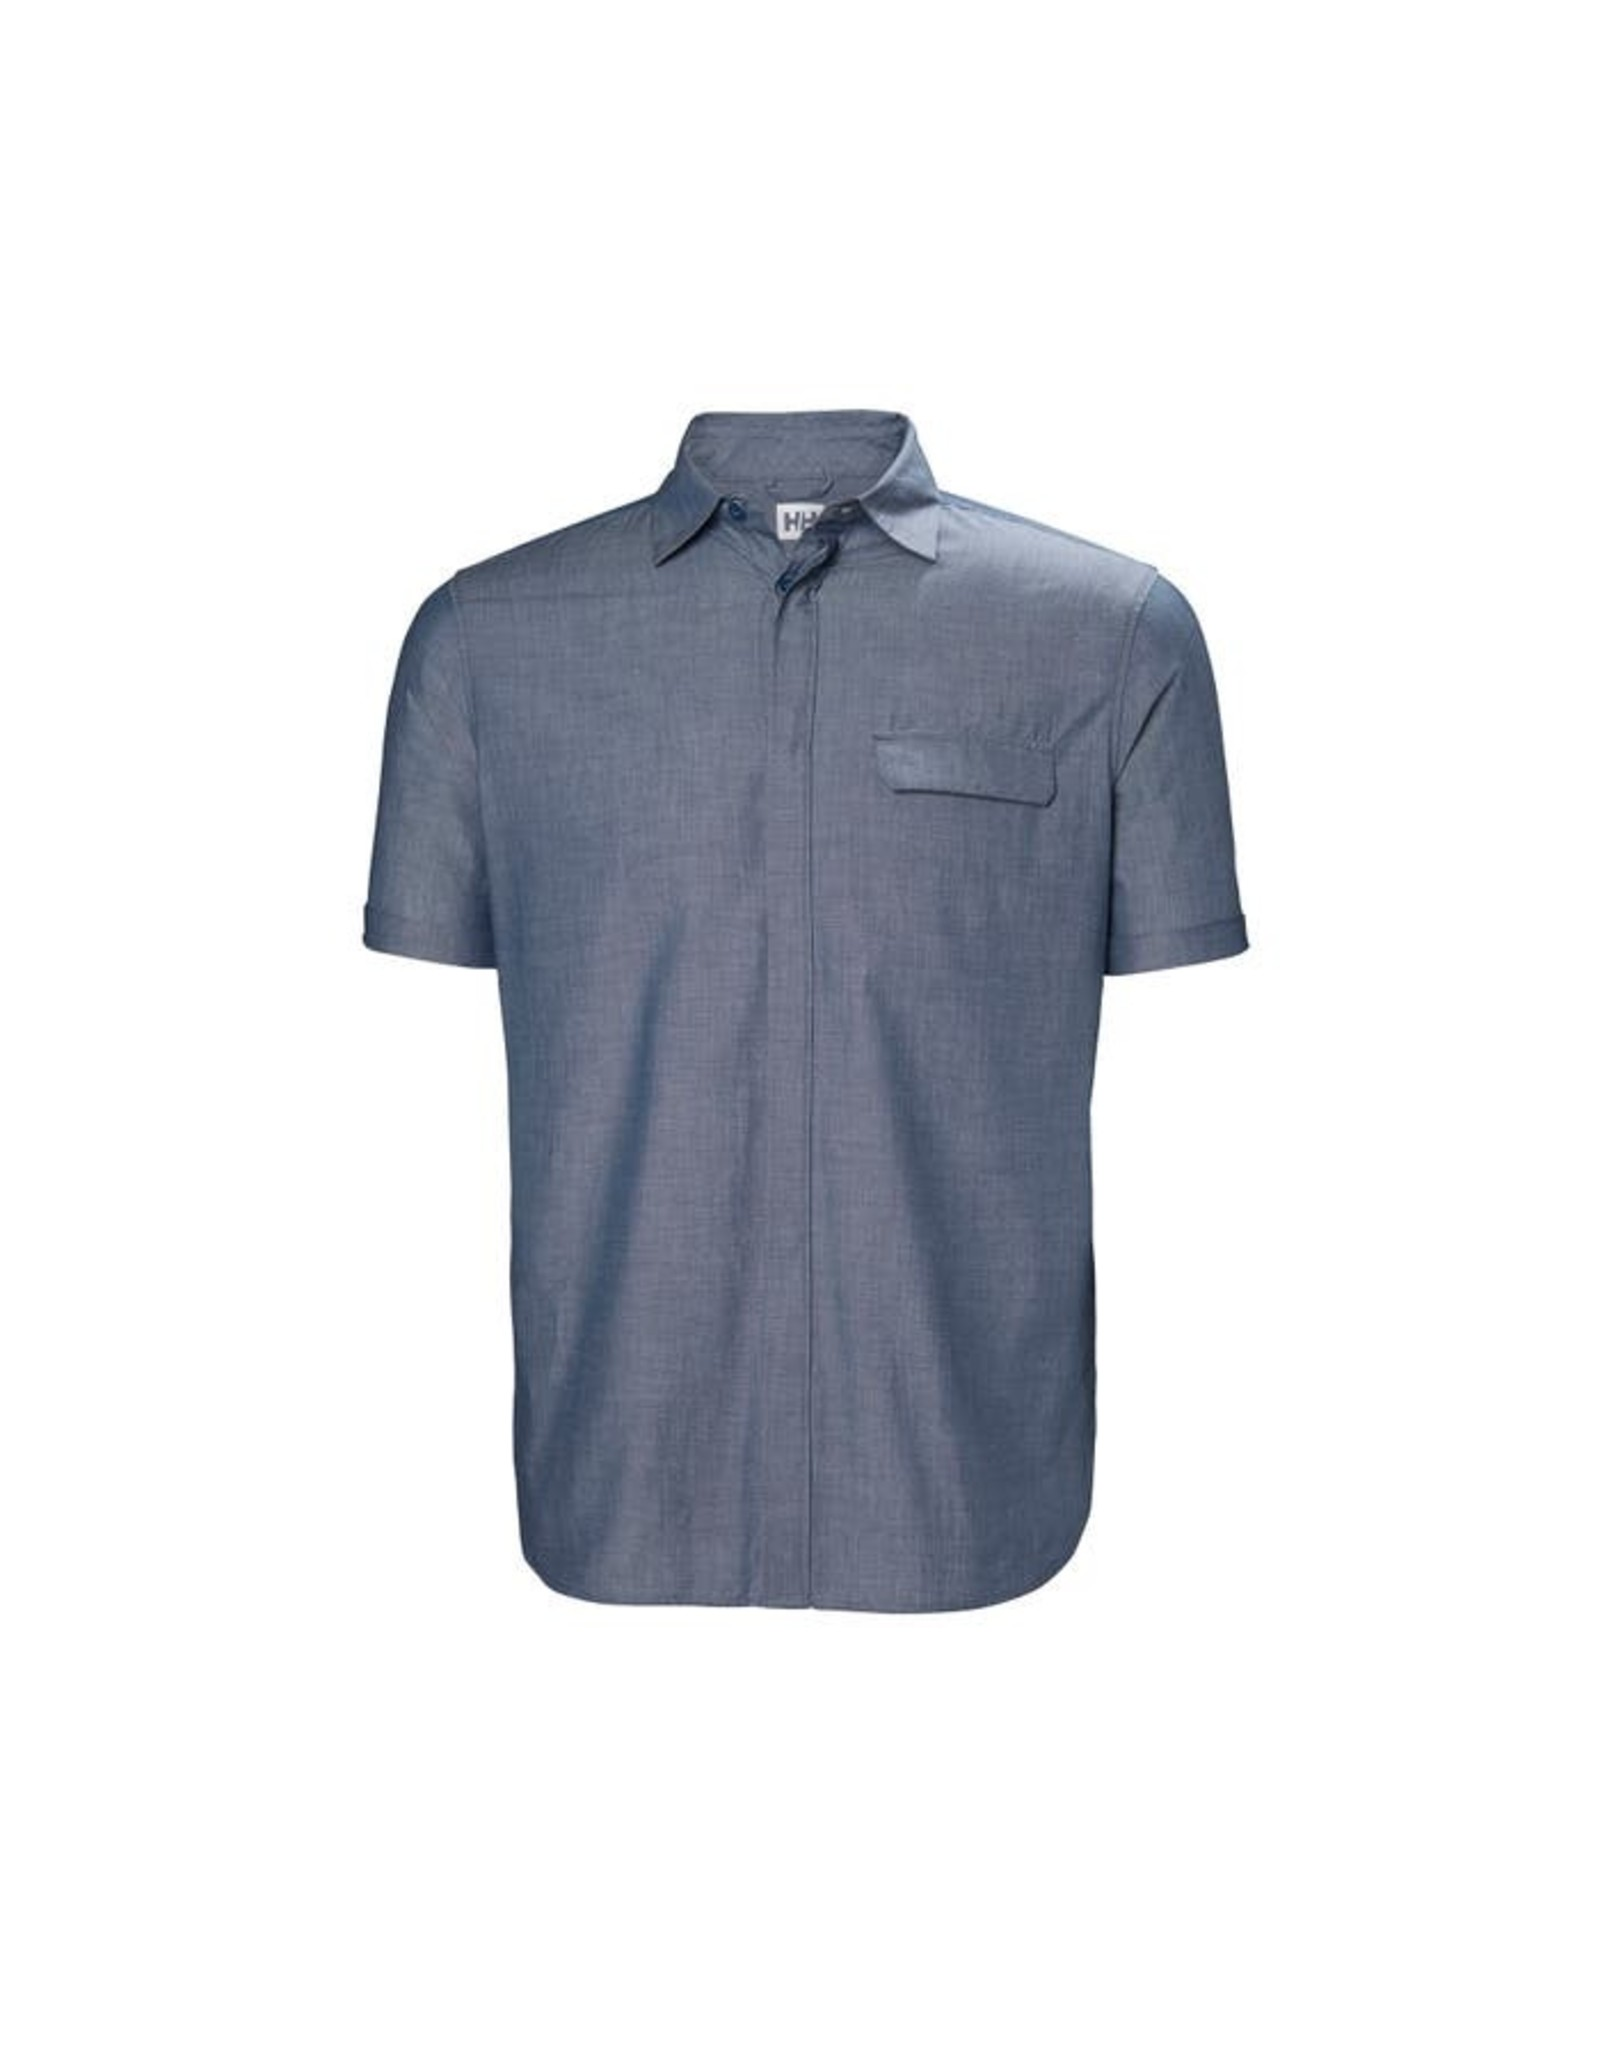 Helly Hansen Men's Huk SS Shirt